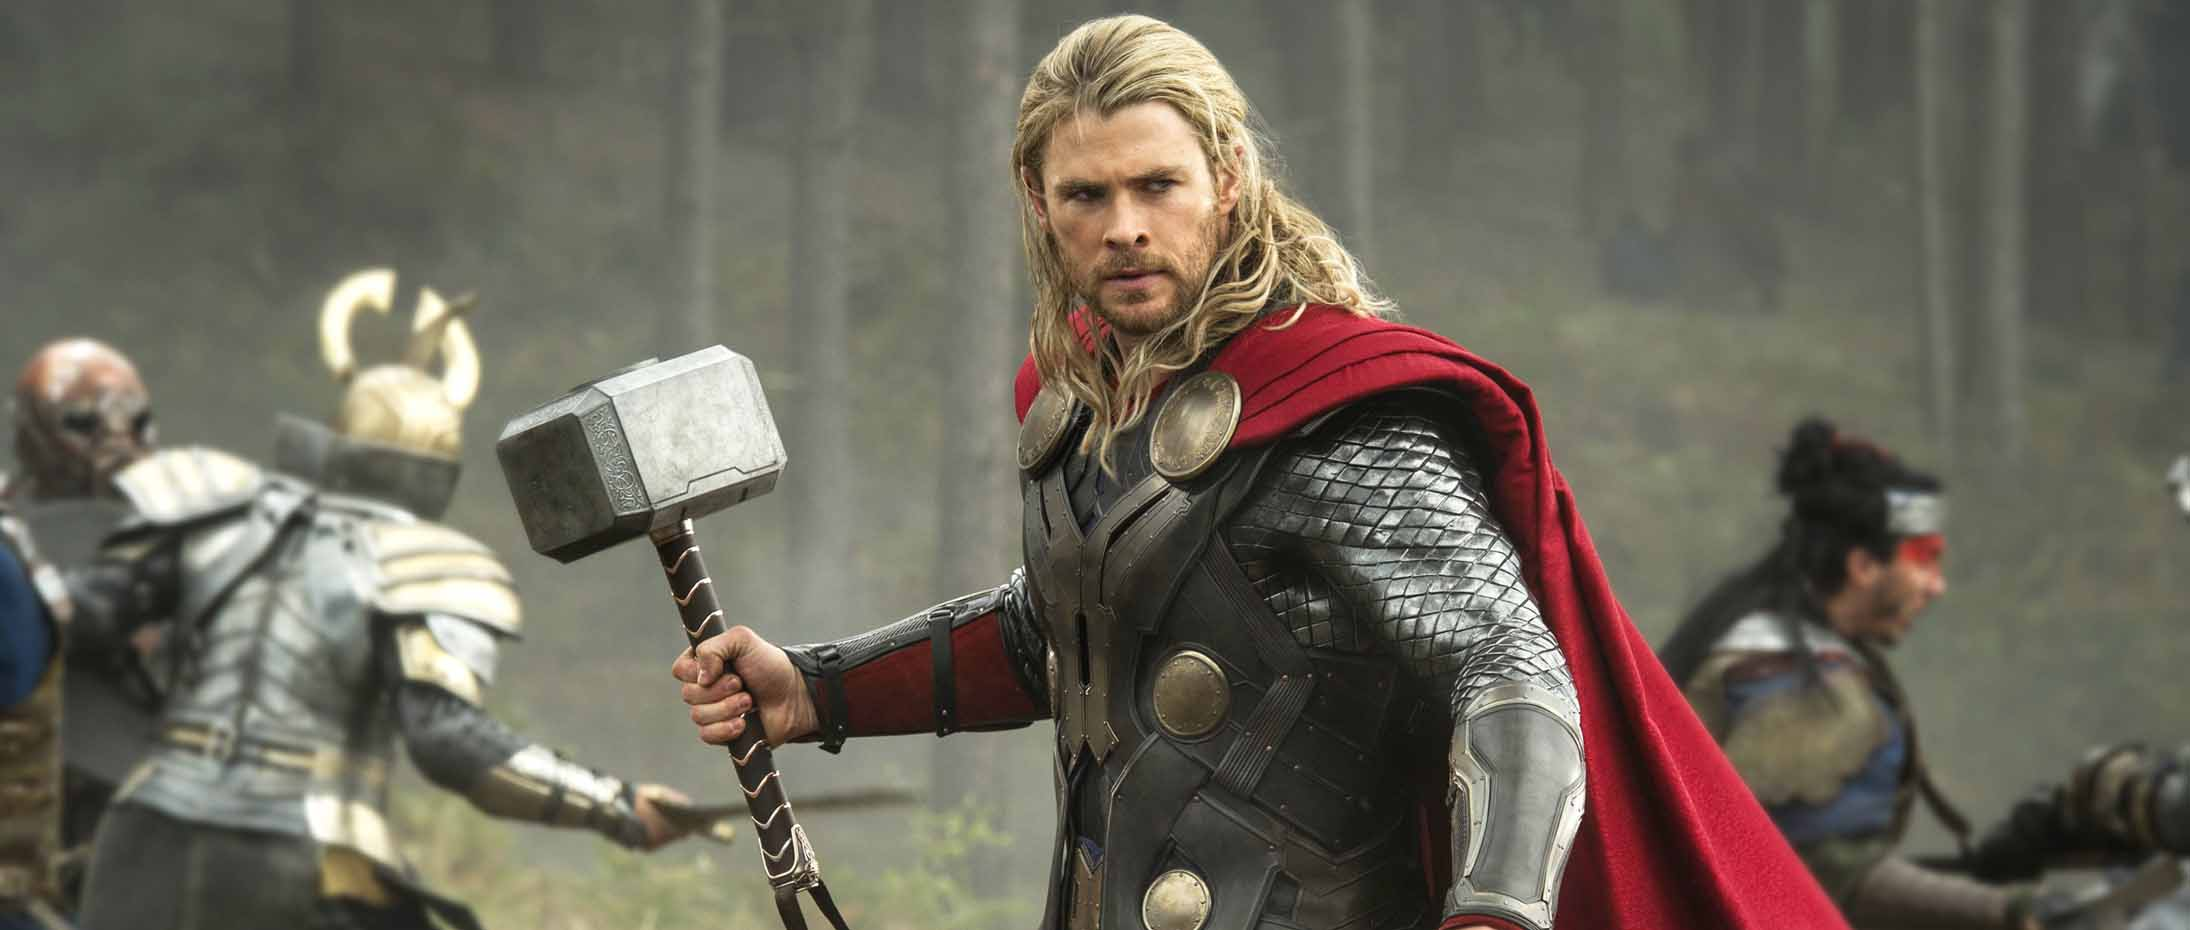 dark Chris world thor hemsworth